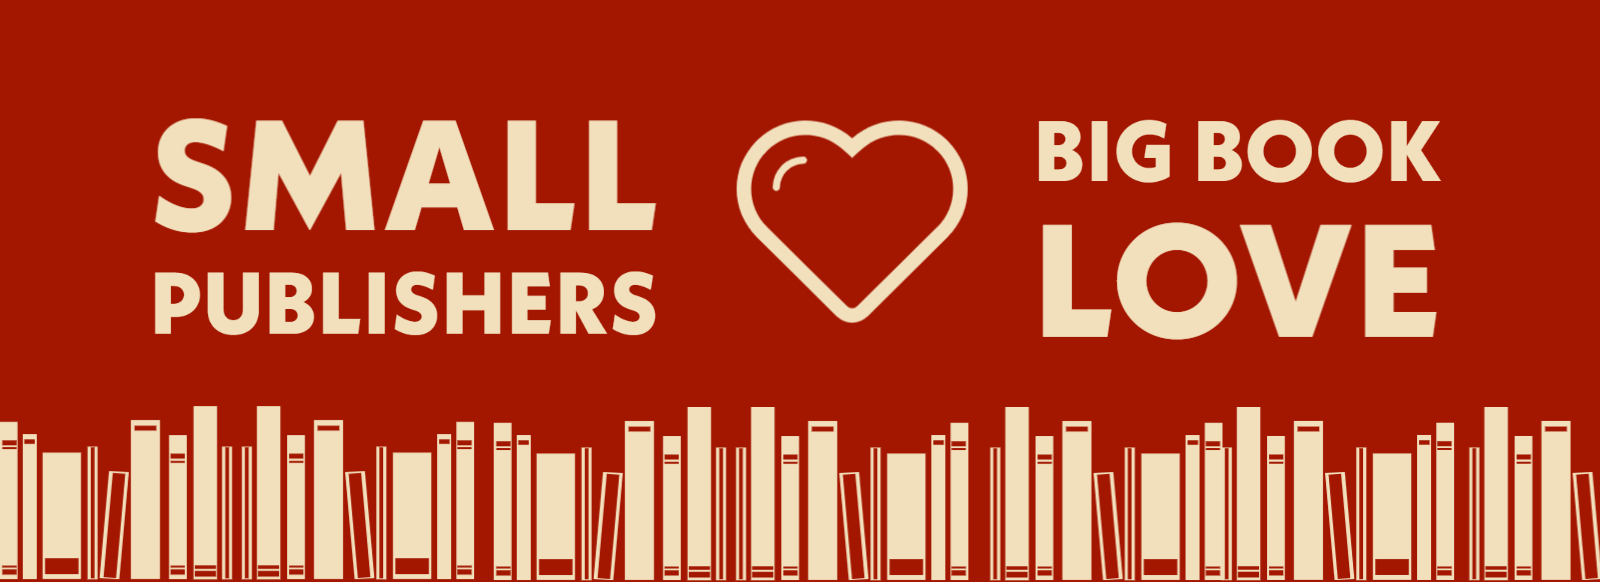 Small Publishers, Big Book Love